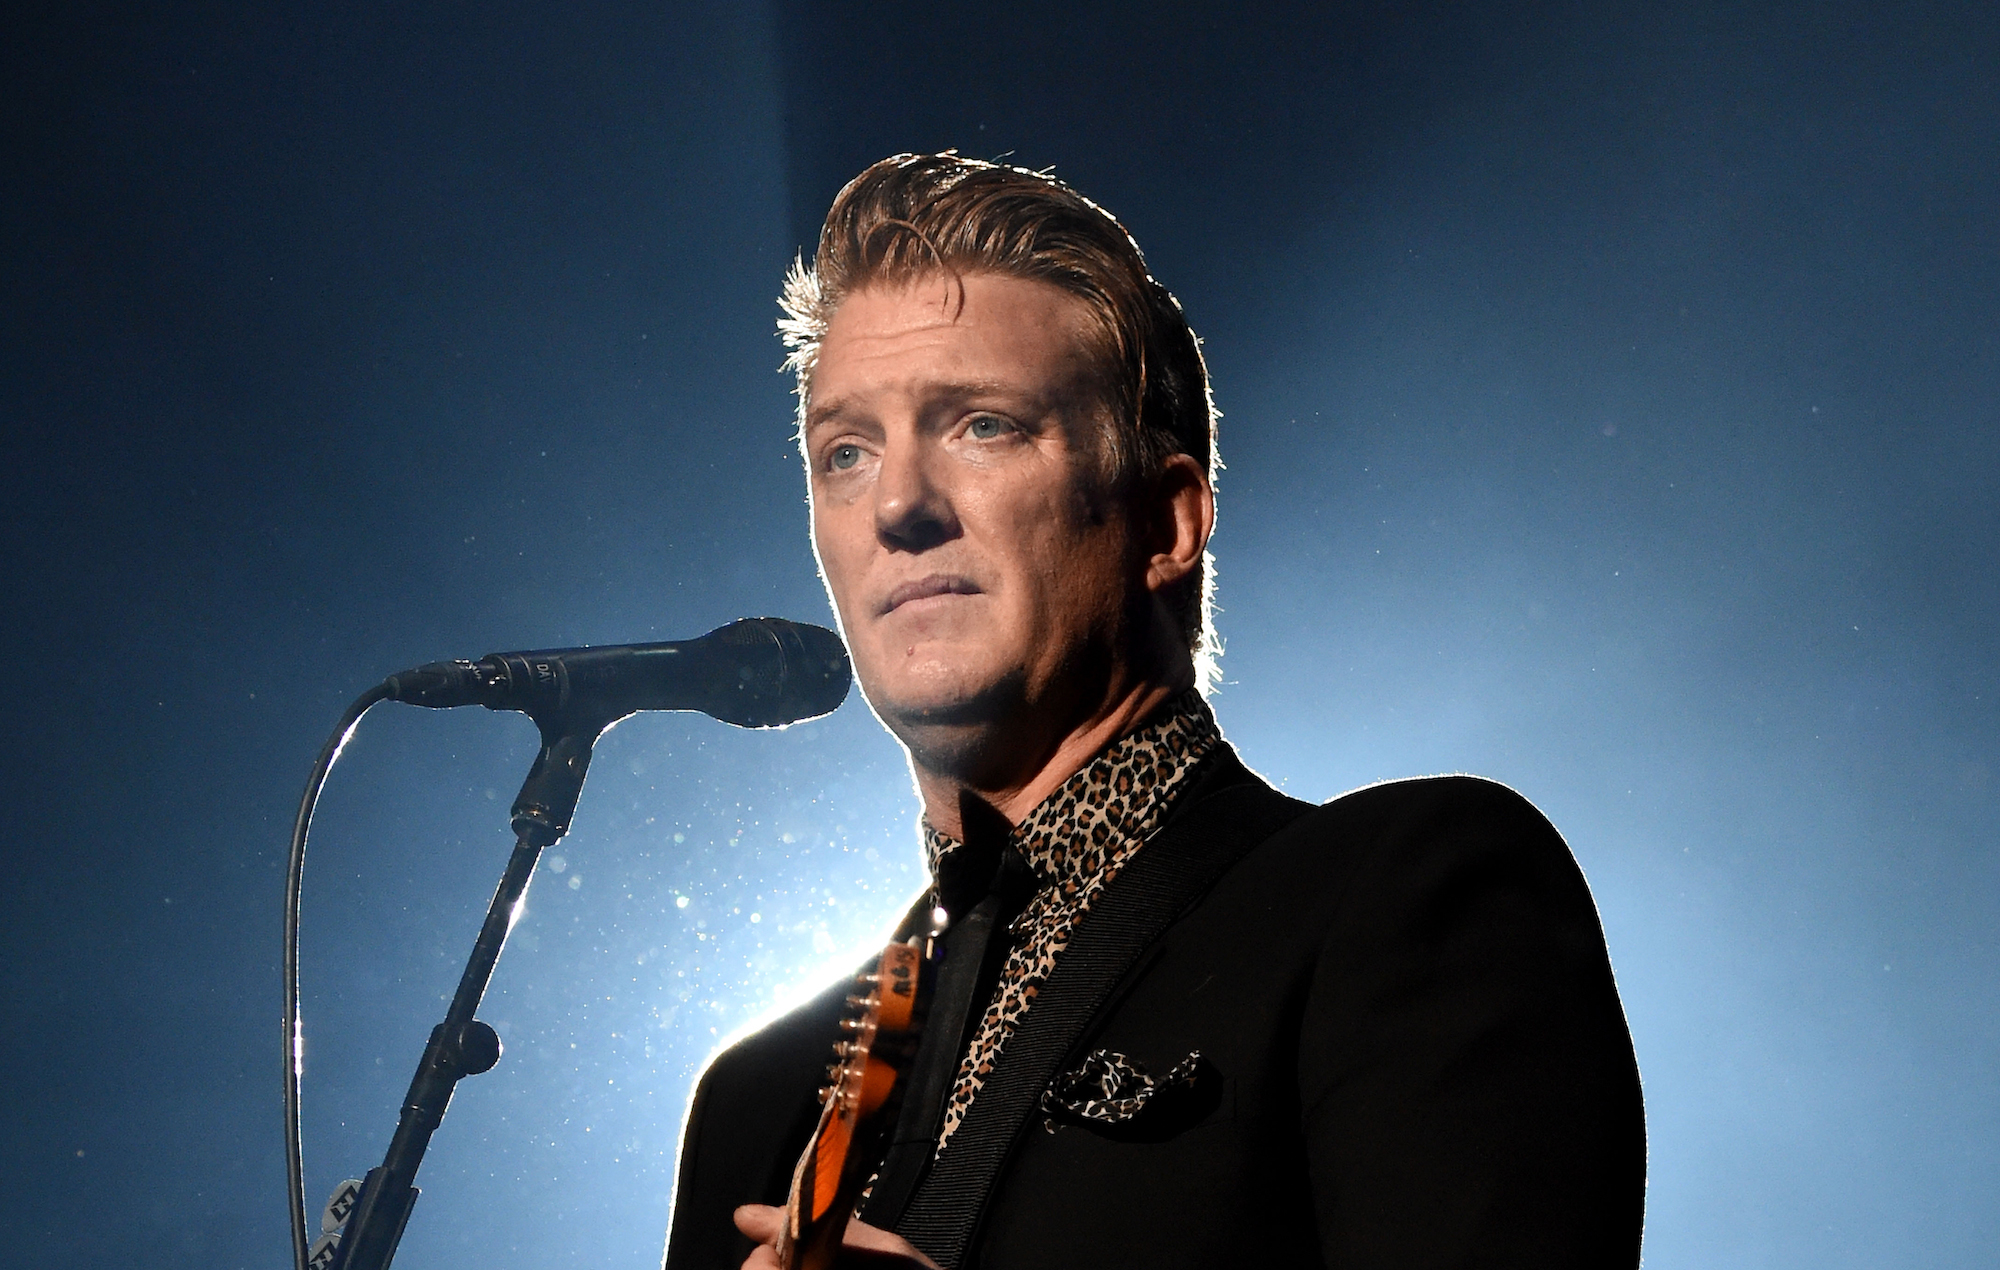 Josh Homme. Credit: Kevin Mazur/Getty Images for The Chris Cornell Estate